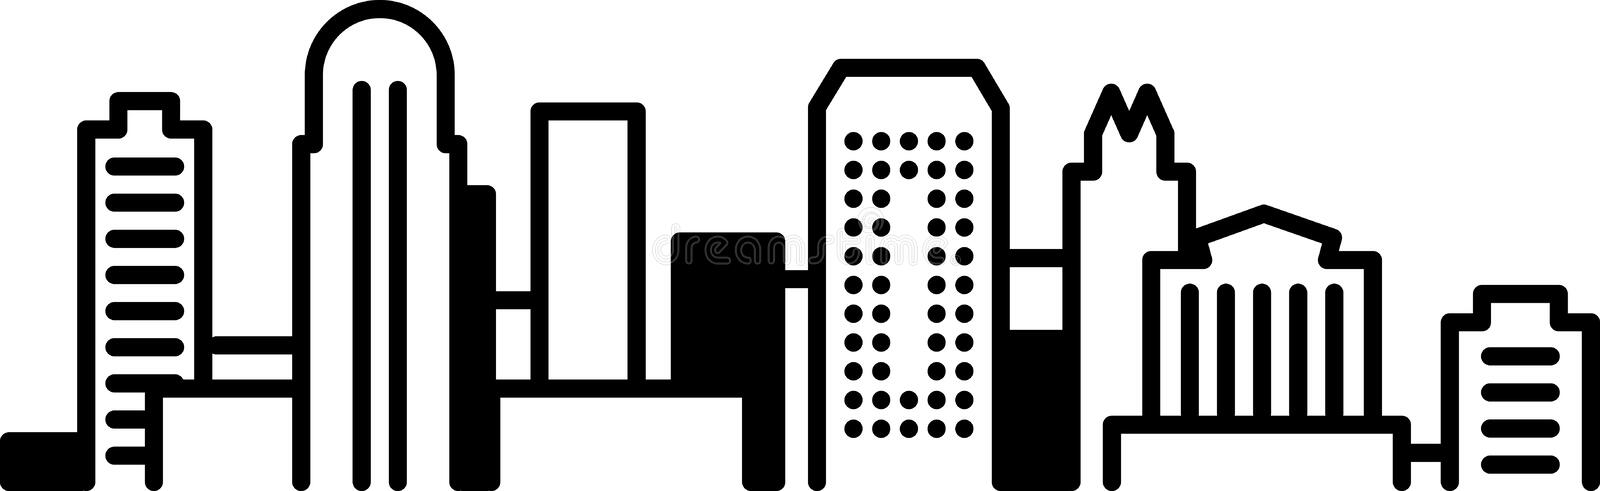 Downtown skyline. Black and white illustration of a cityscape.